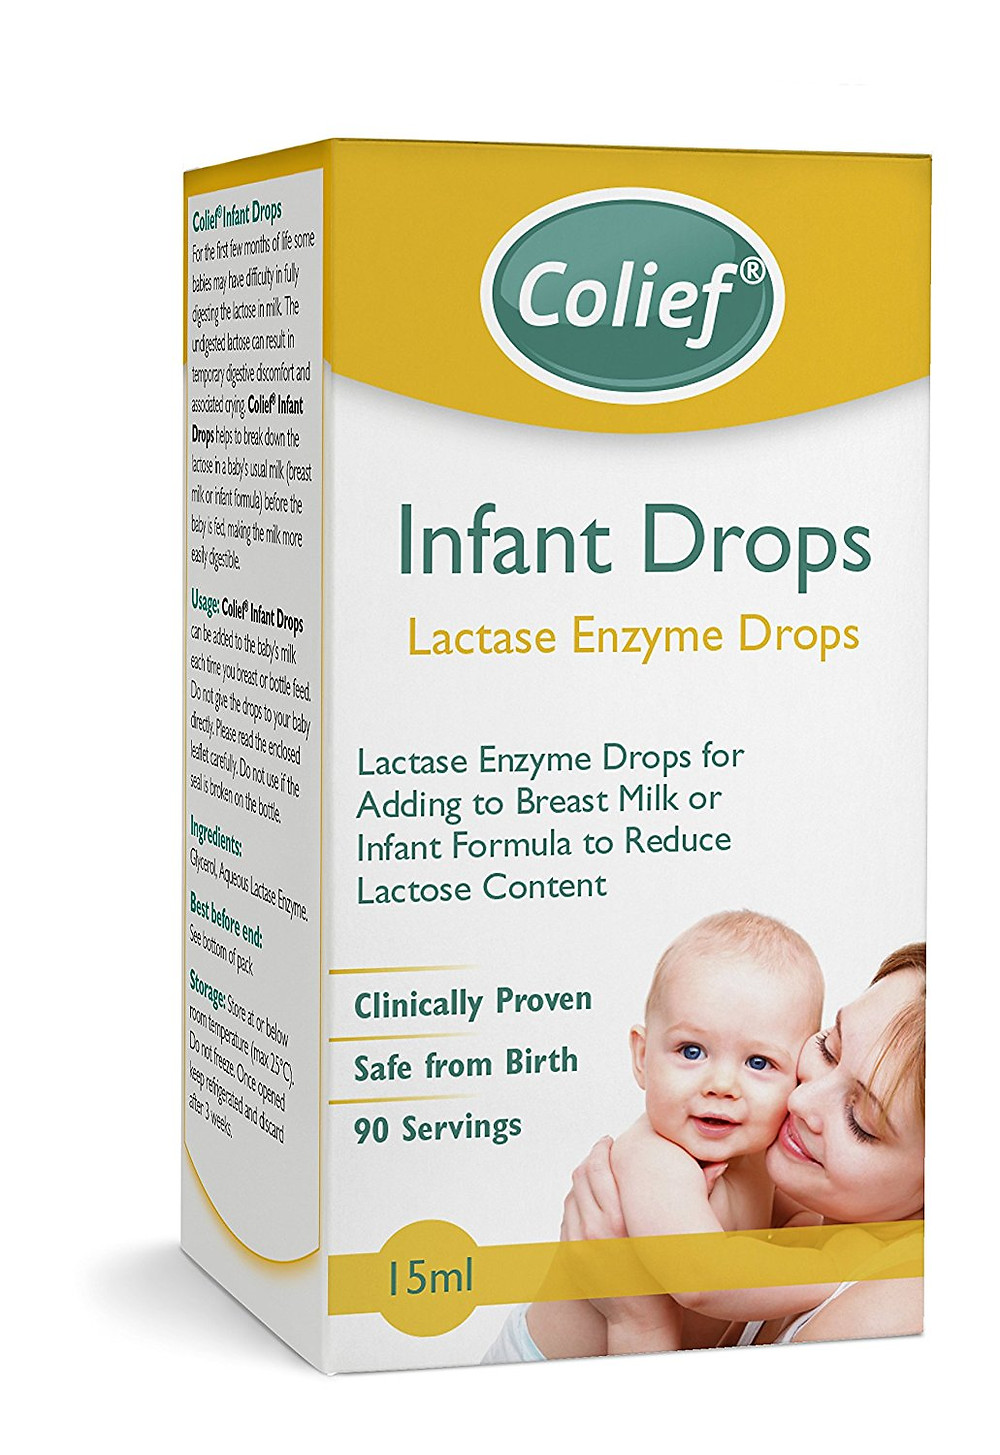 Baby and colic